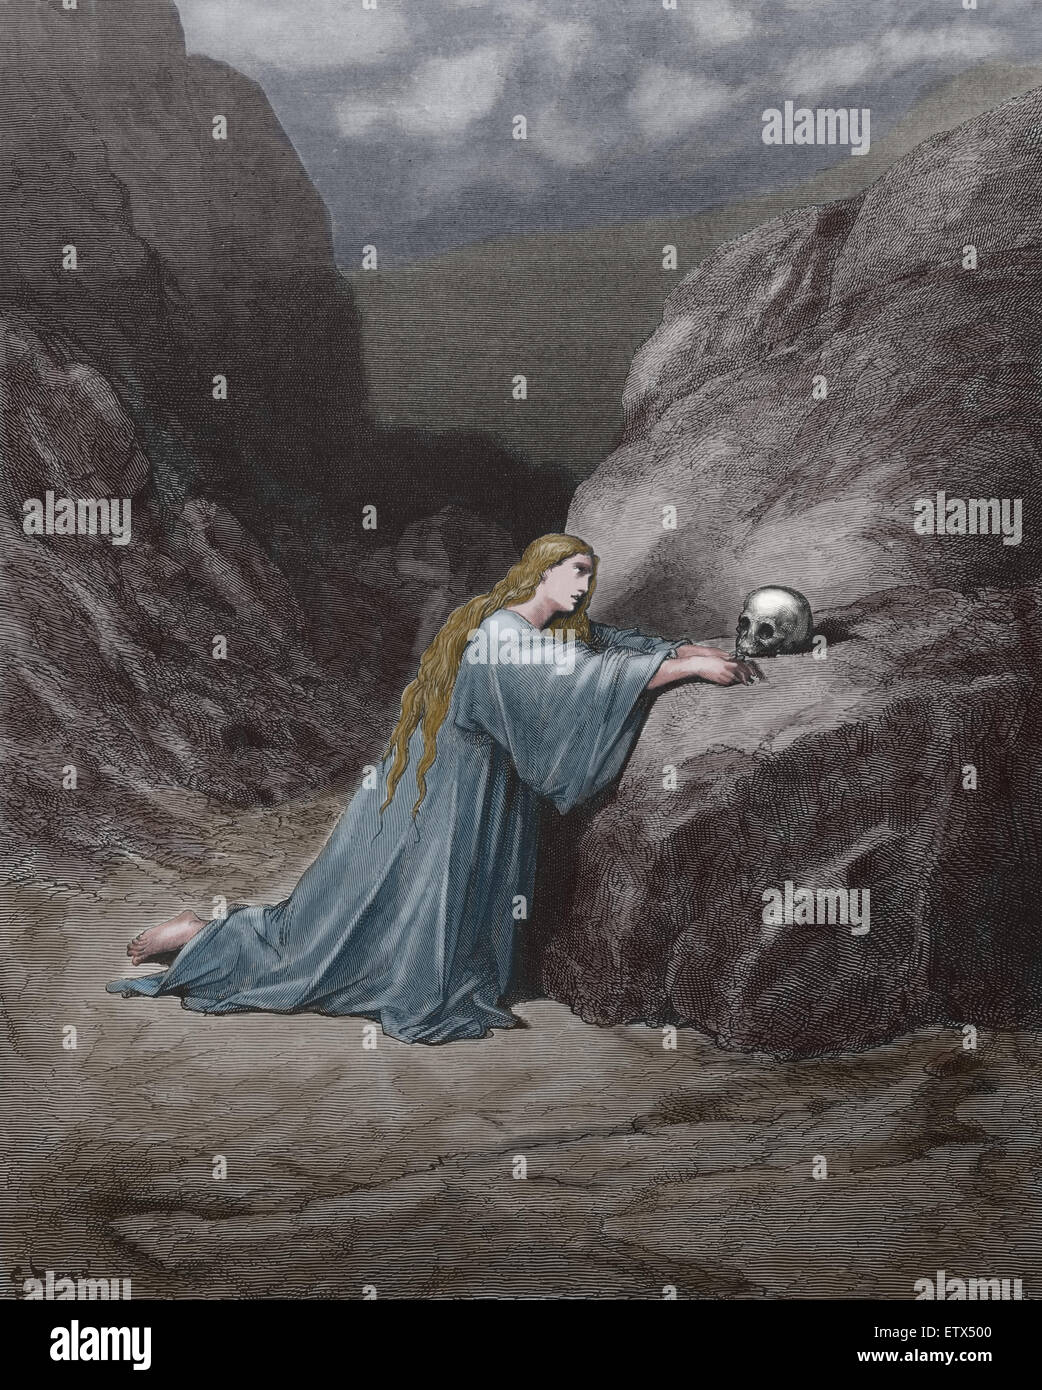 New Testament. Mary Magdalene repentant. Luke 7:47. Engraving by Gustave Dore. 19th c. Later colouration. - Stock Image